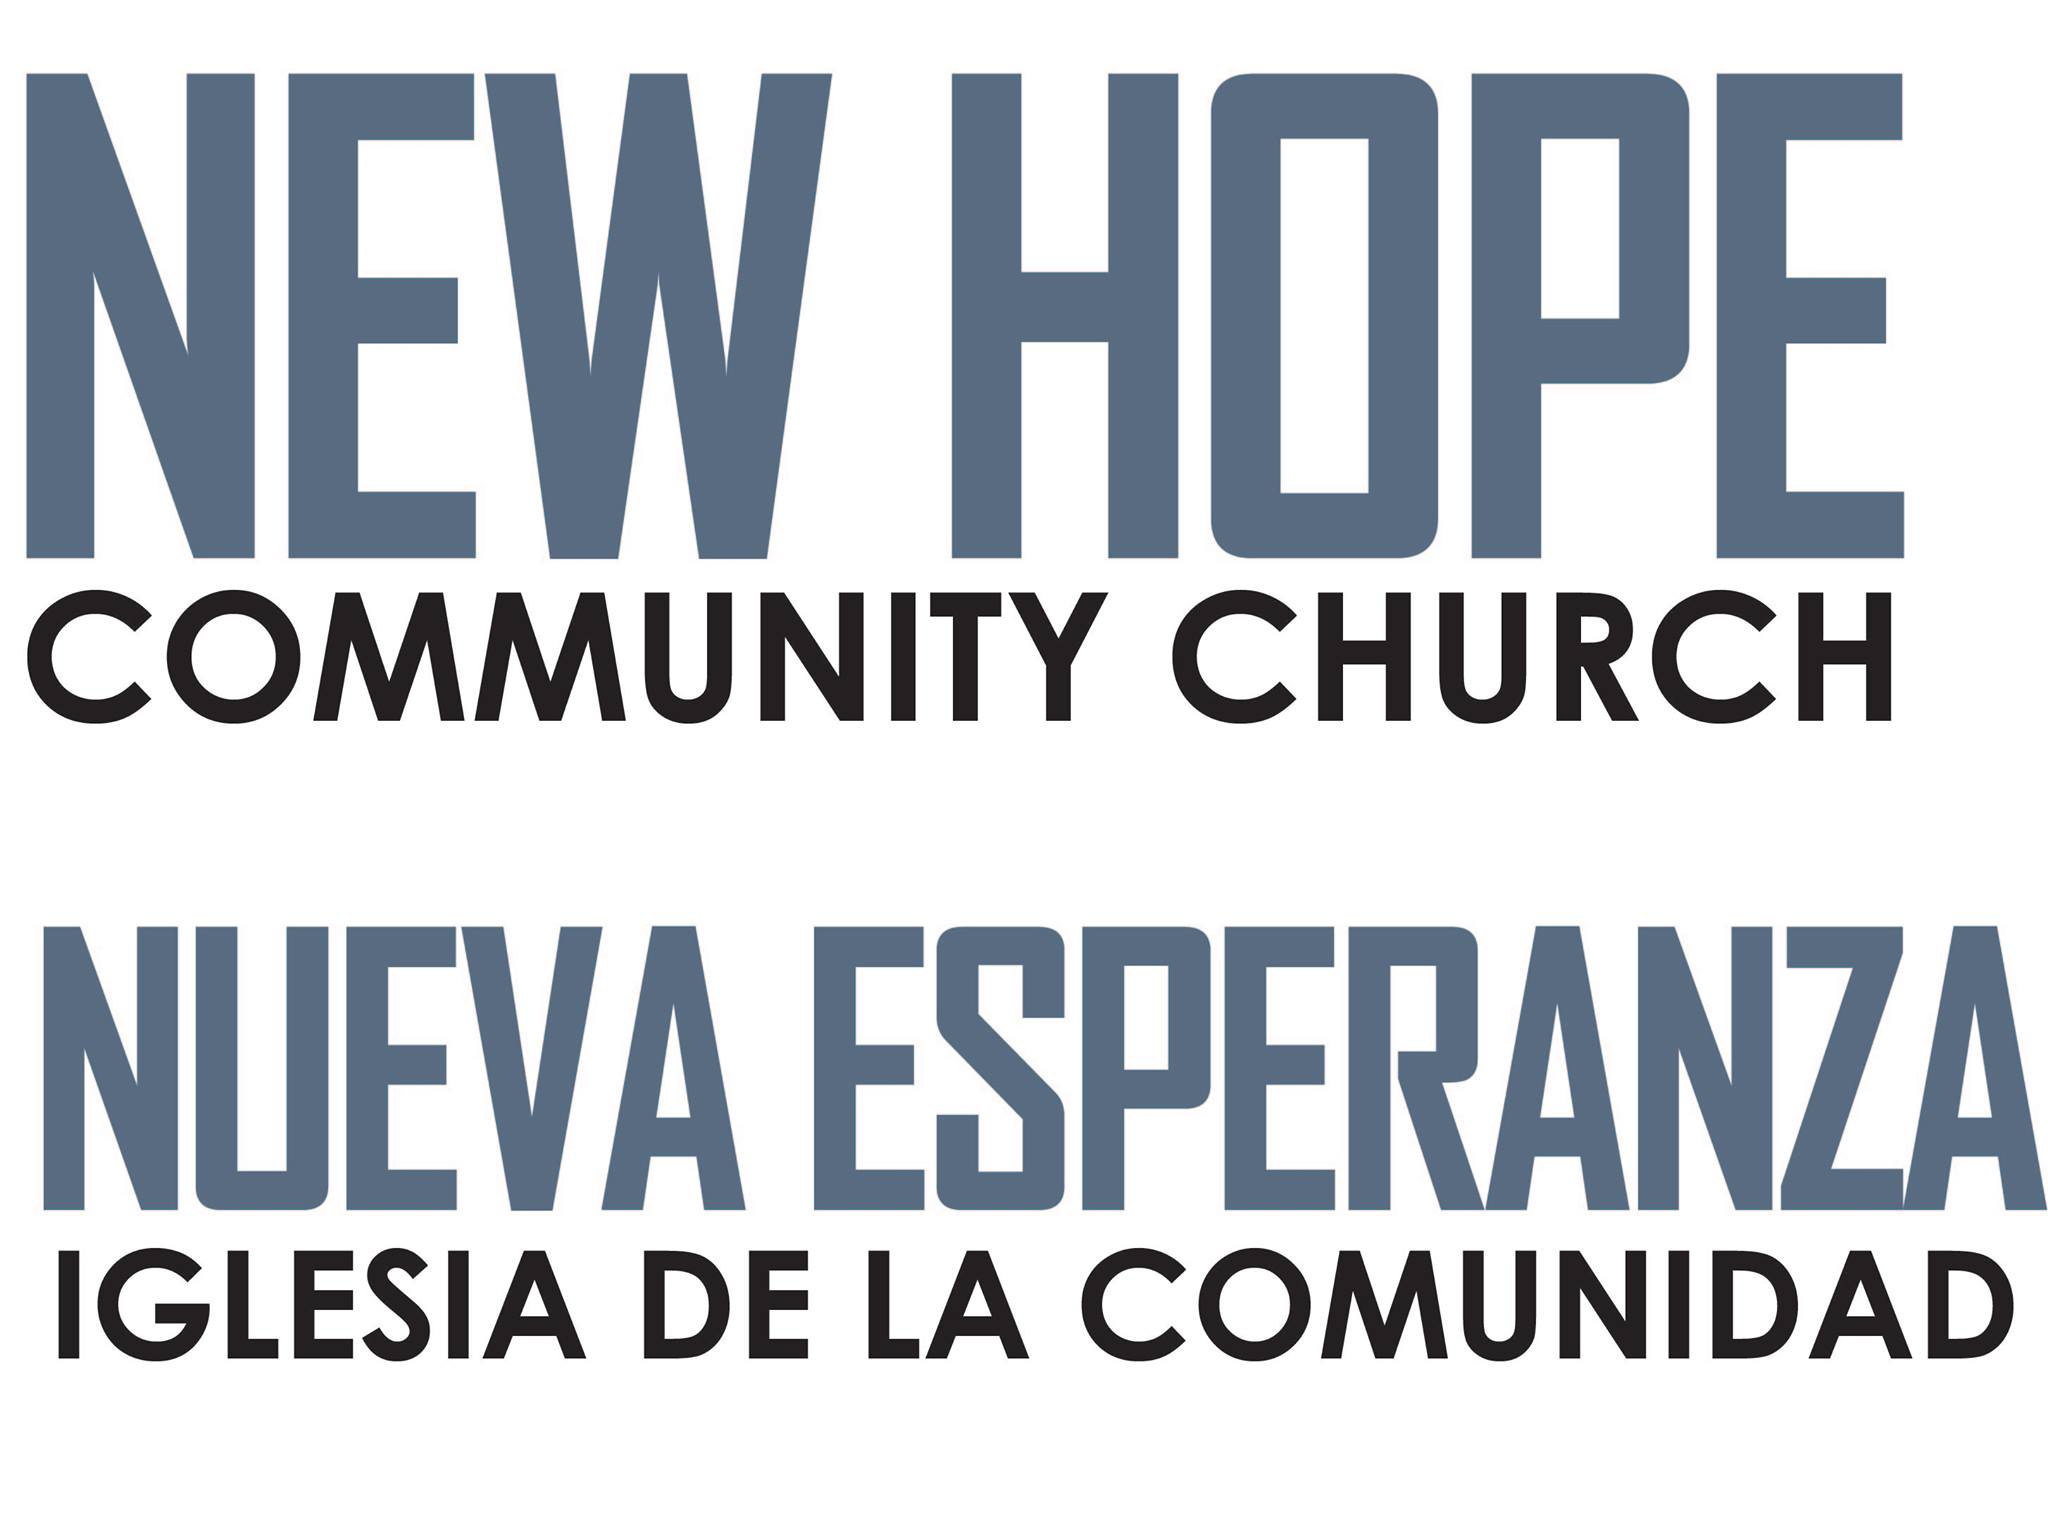 New Hope Community Church – Nueva Esperanza Iglesia De La Comunidad